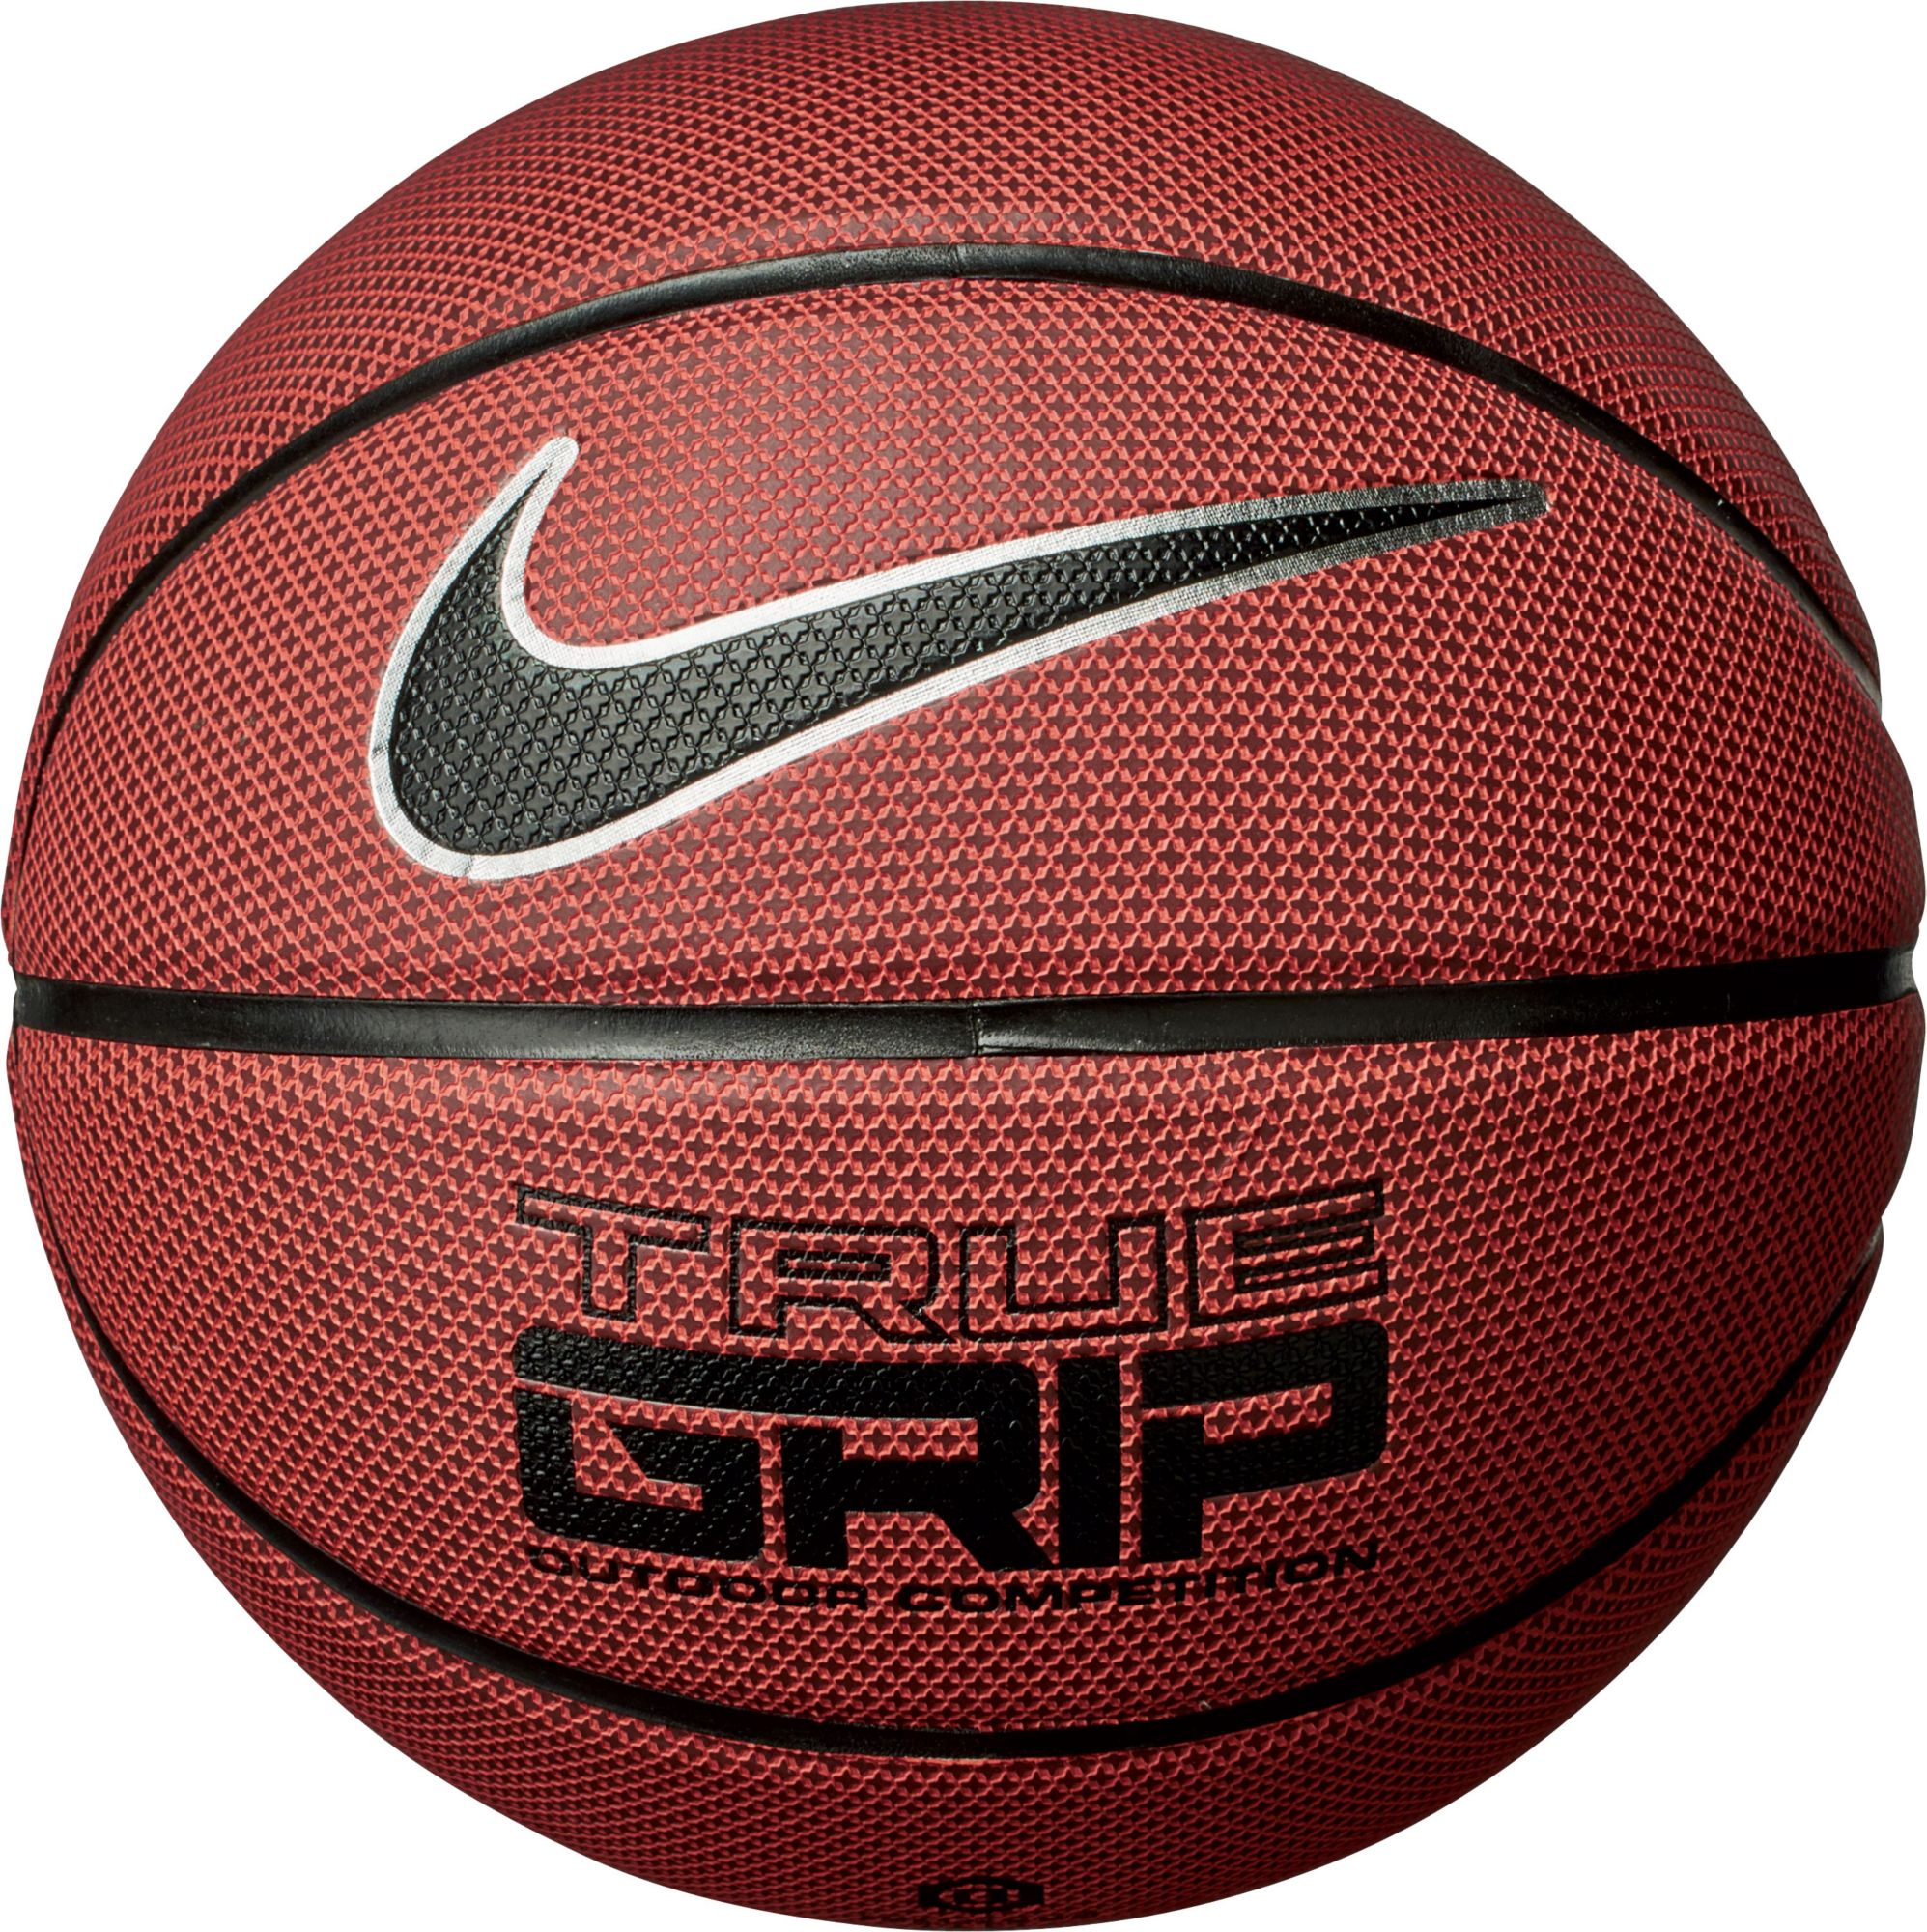 Product Image · Nike True Grip Official Basketball (29.5